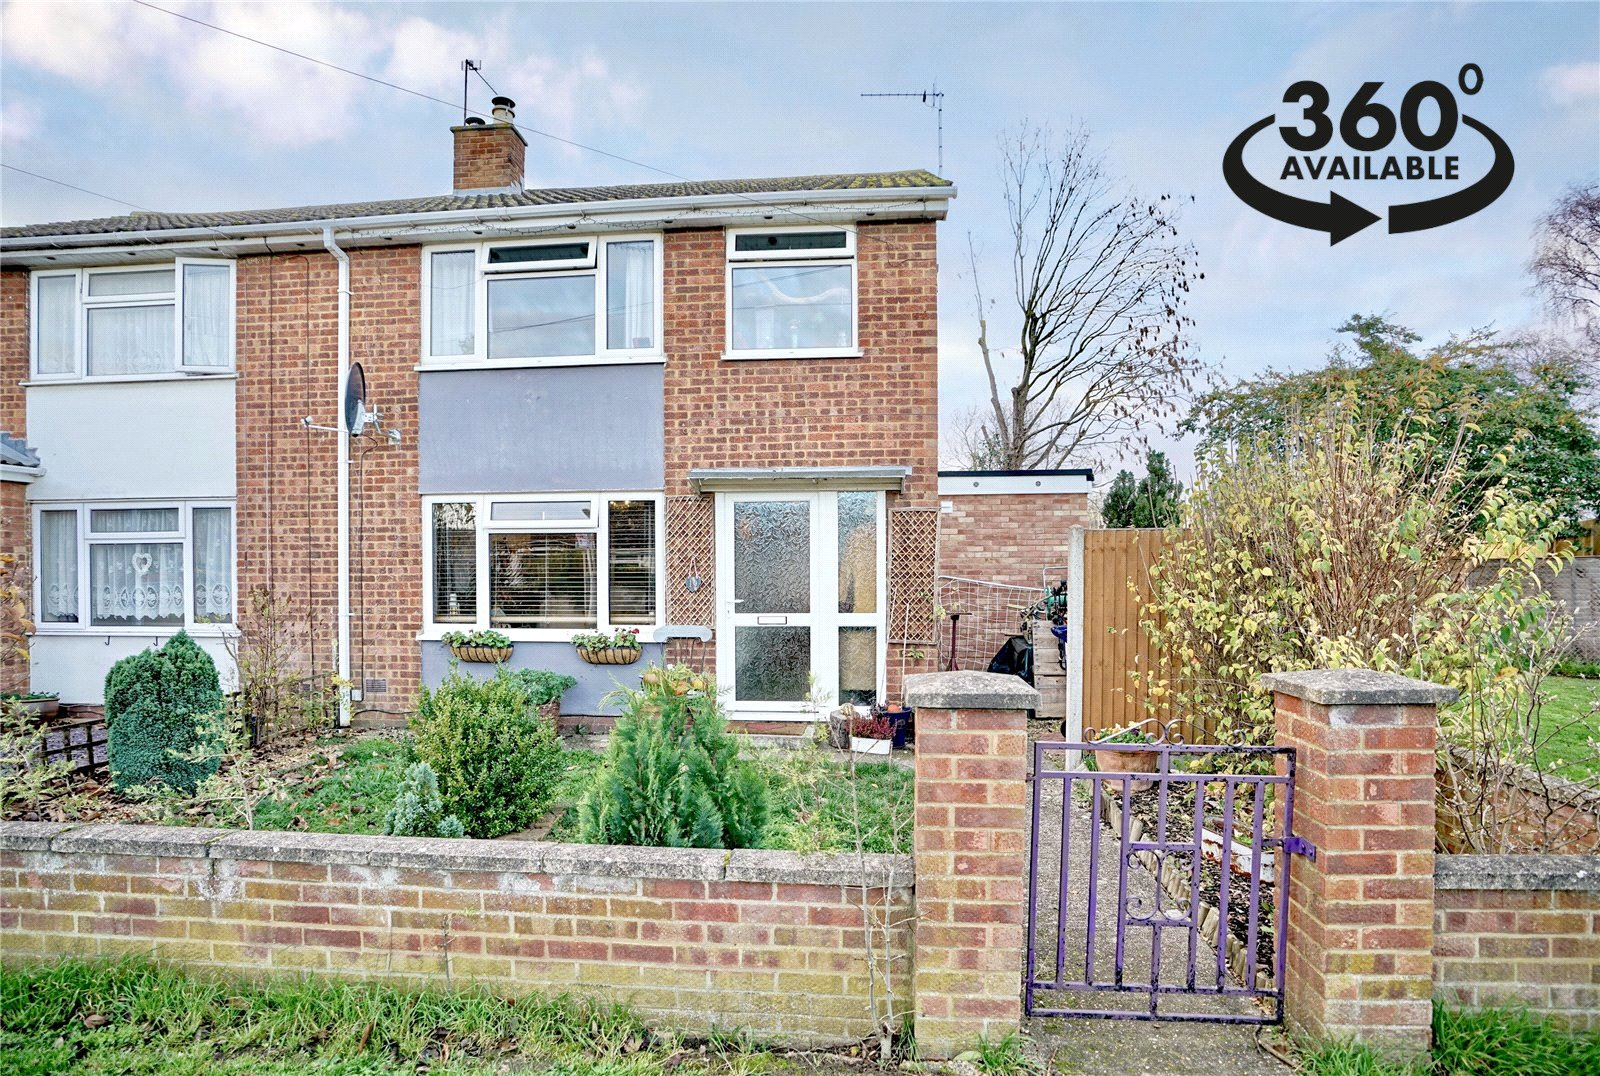 3 bed house for sale in St. Neots, PE19 1SG, PE19